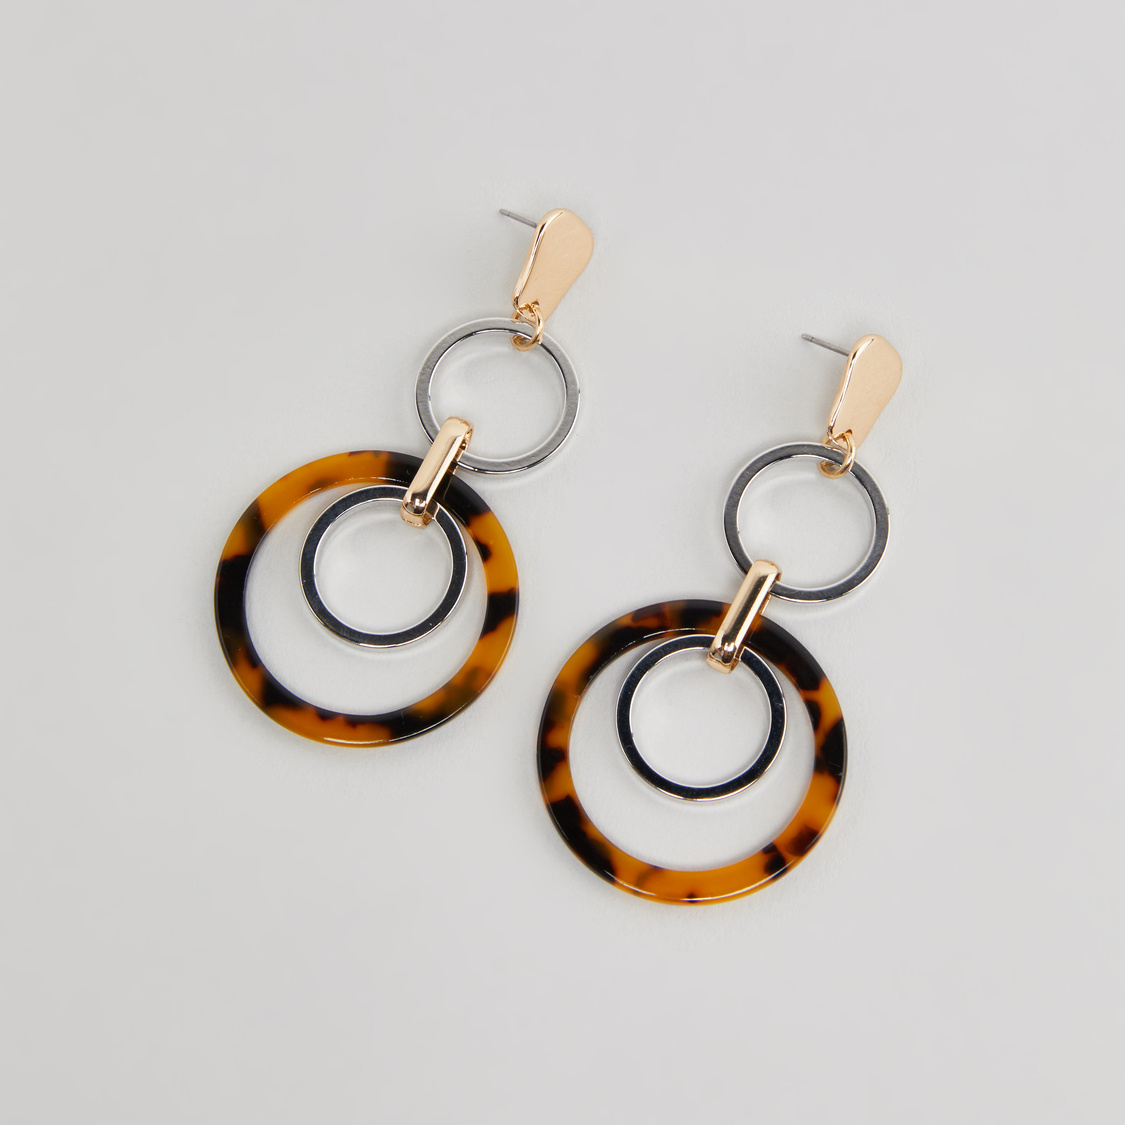 Circle Accented Danglers with Pushback Closure